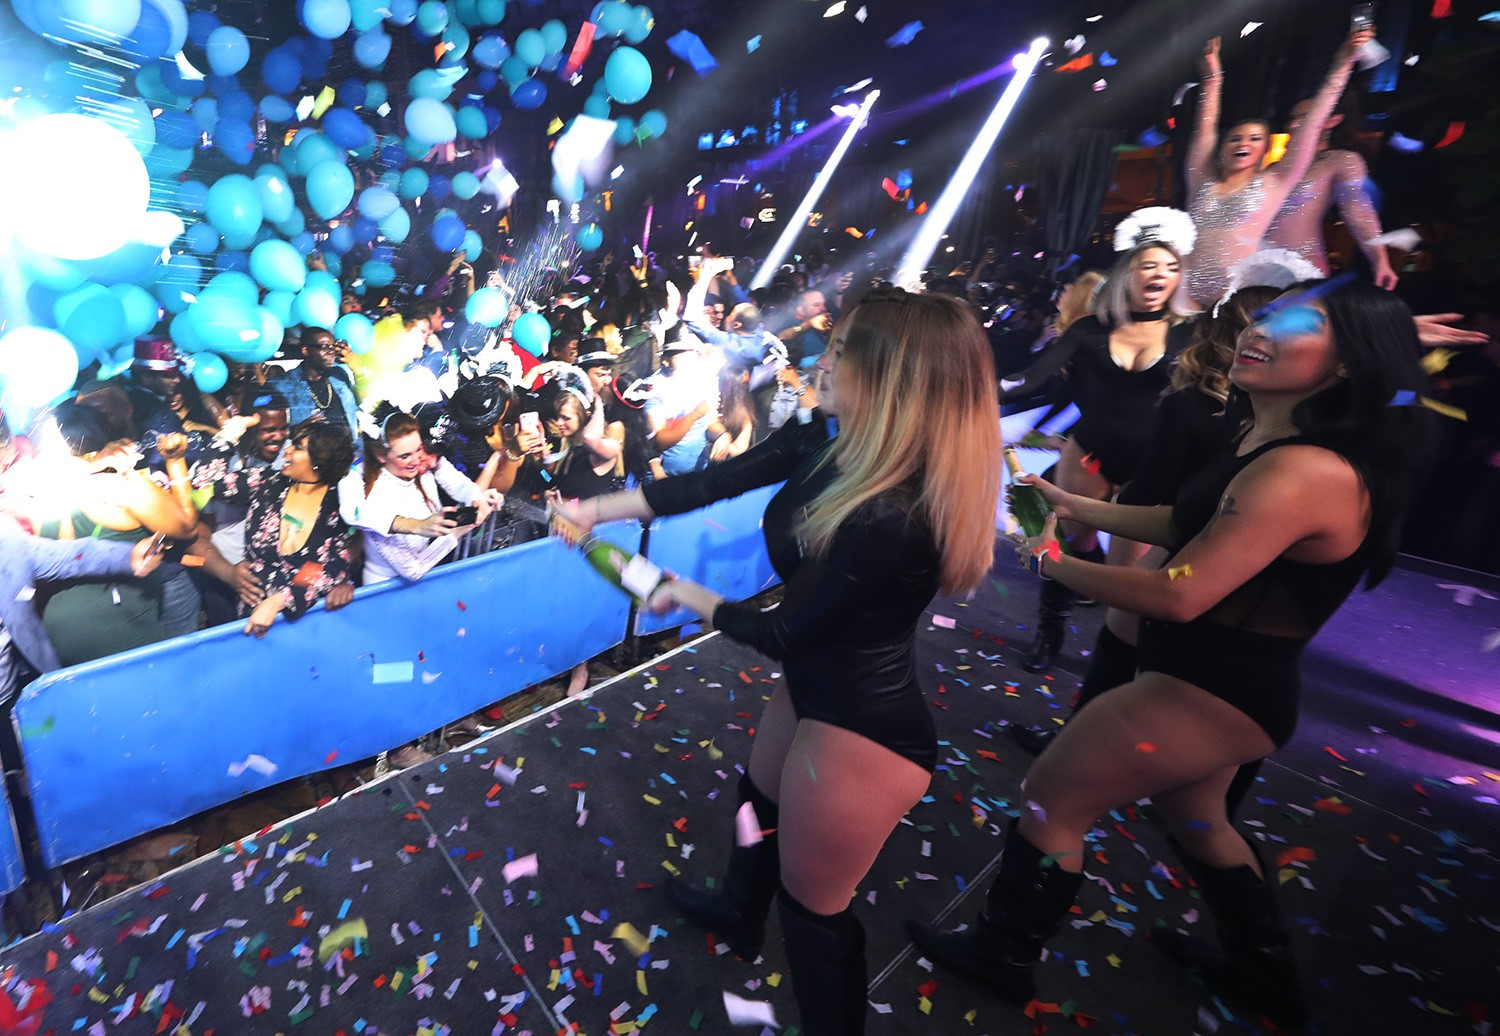 New Years Eve Atlantic City Harrahs Pool Party 2020 New Years Eve Atlantic City Harrahs Pool Party 2020 on Dec 31, 20:00@Harrahs Atlantic City - Buy tickets and Get information on GametightNY